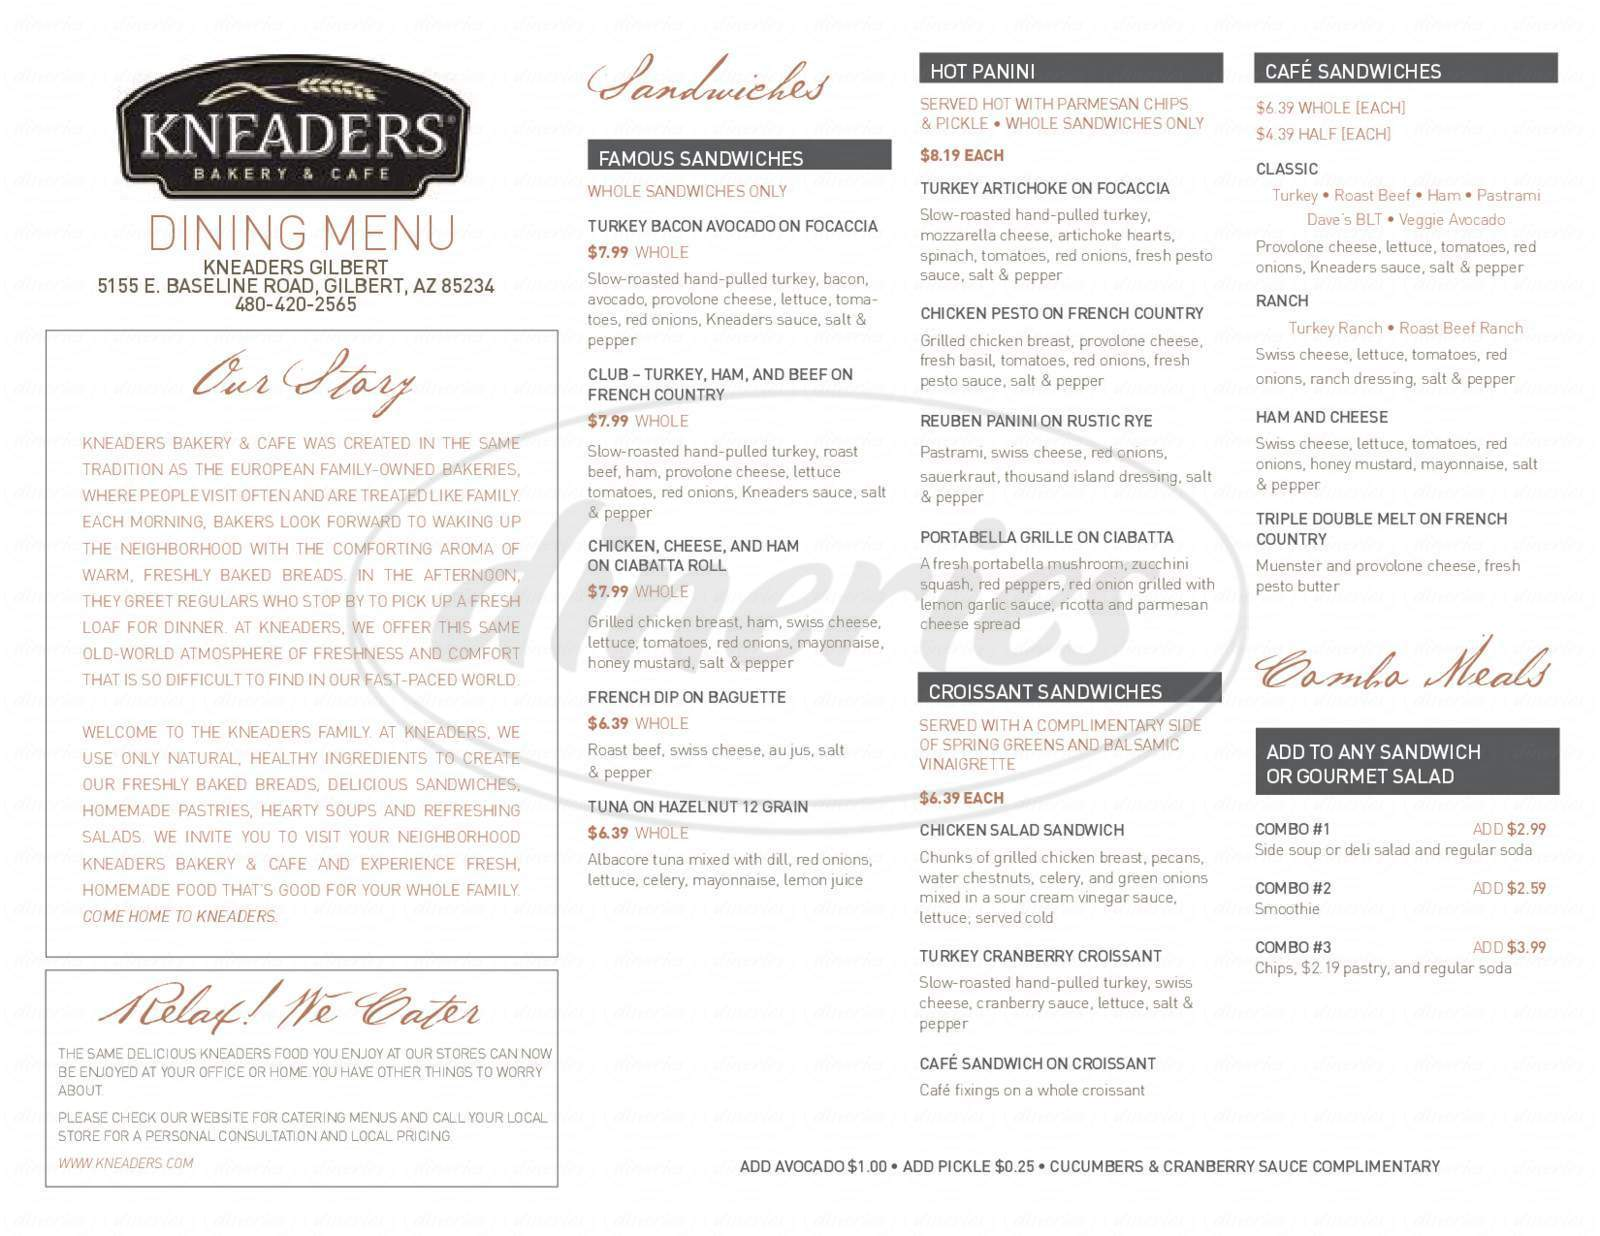 menu for Kneader's Bakery